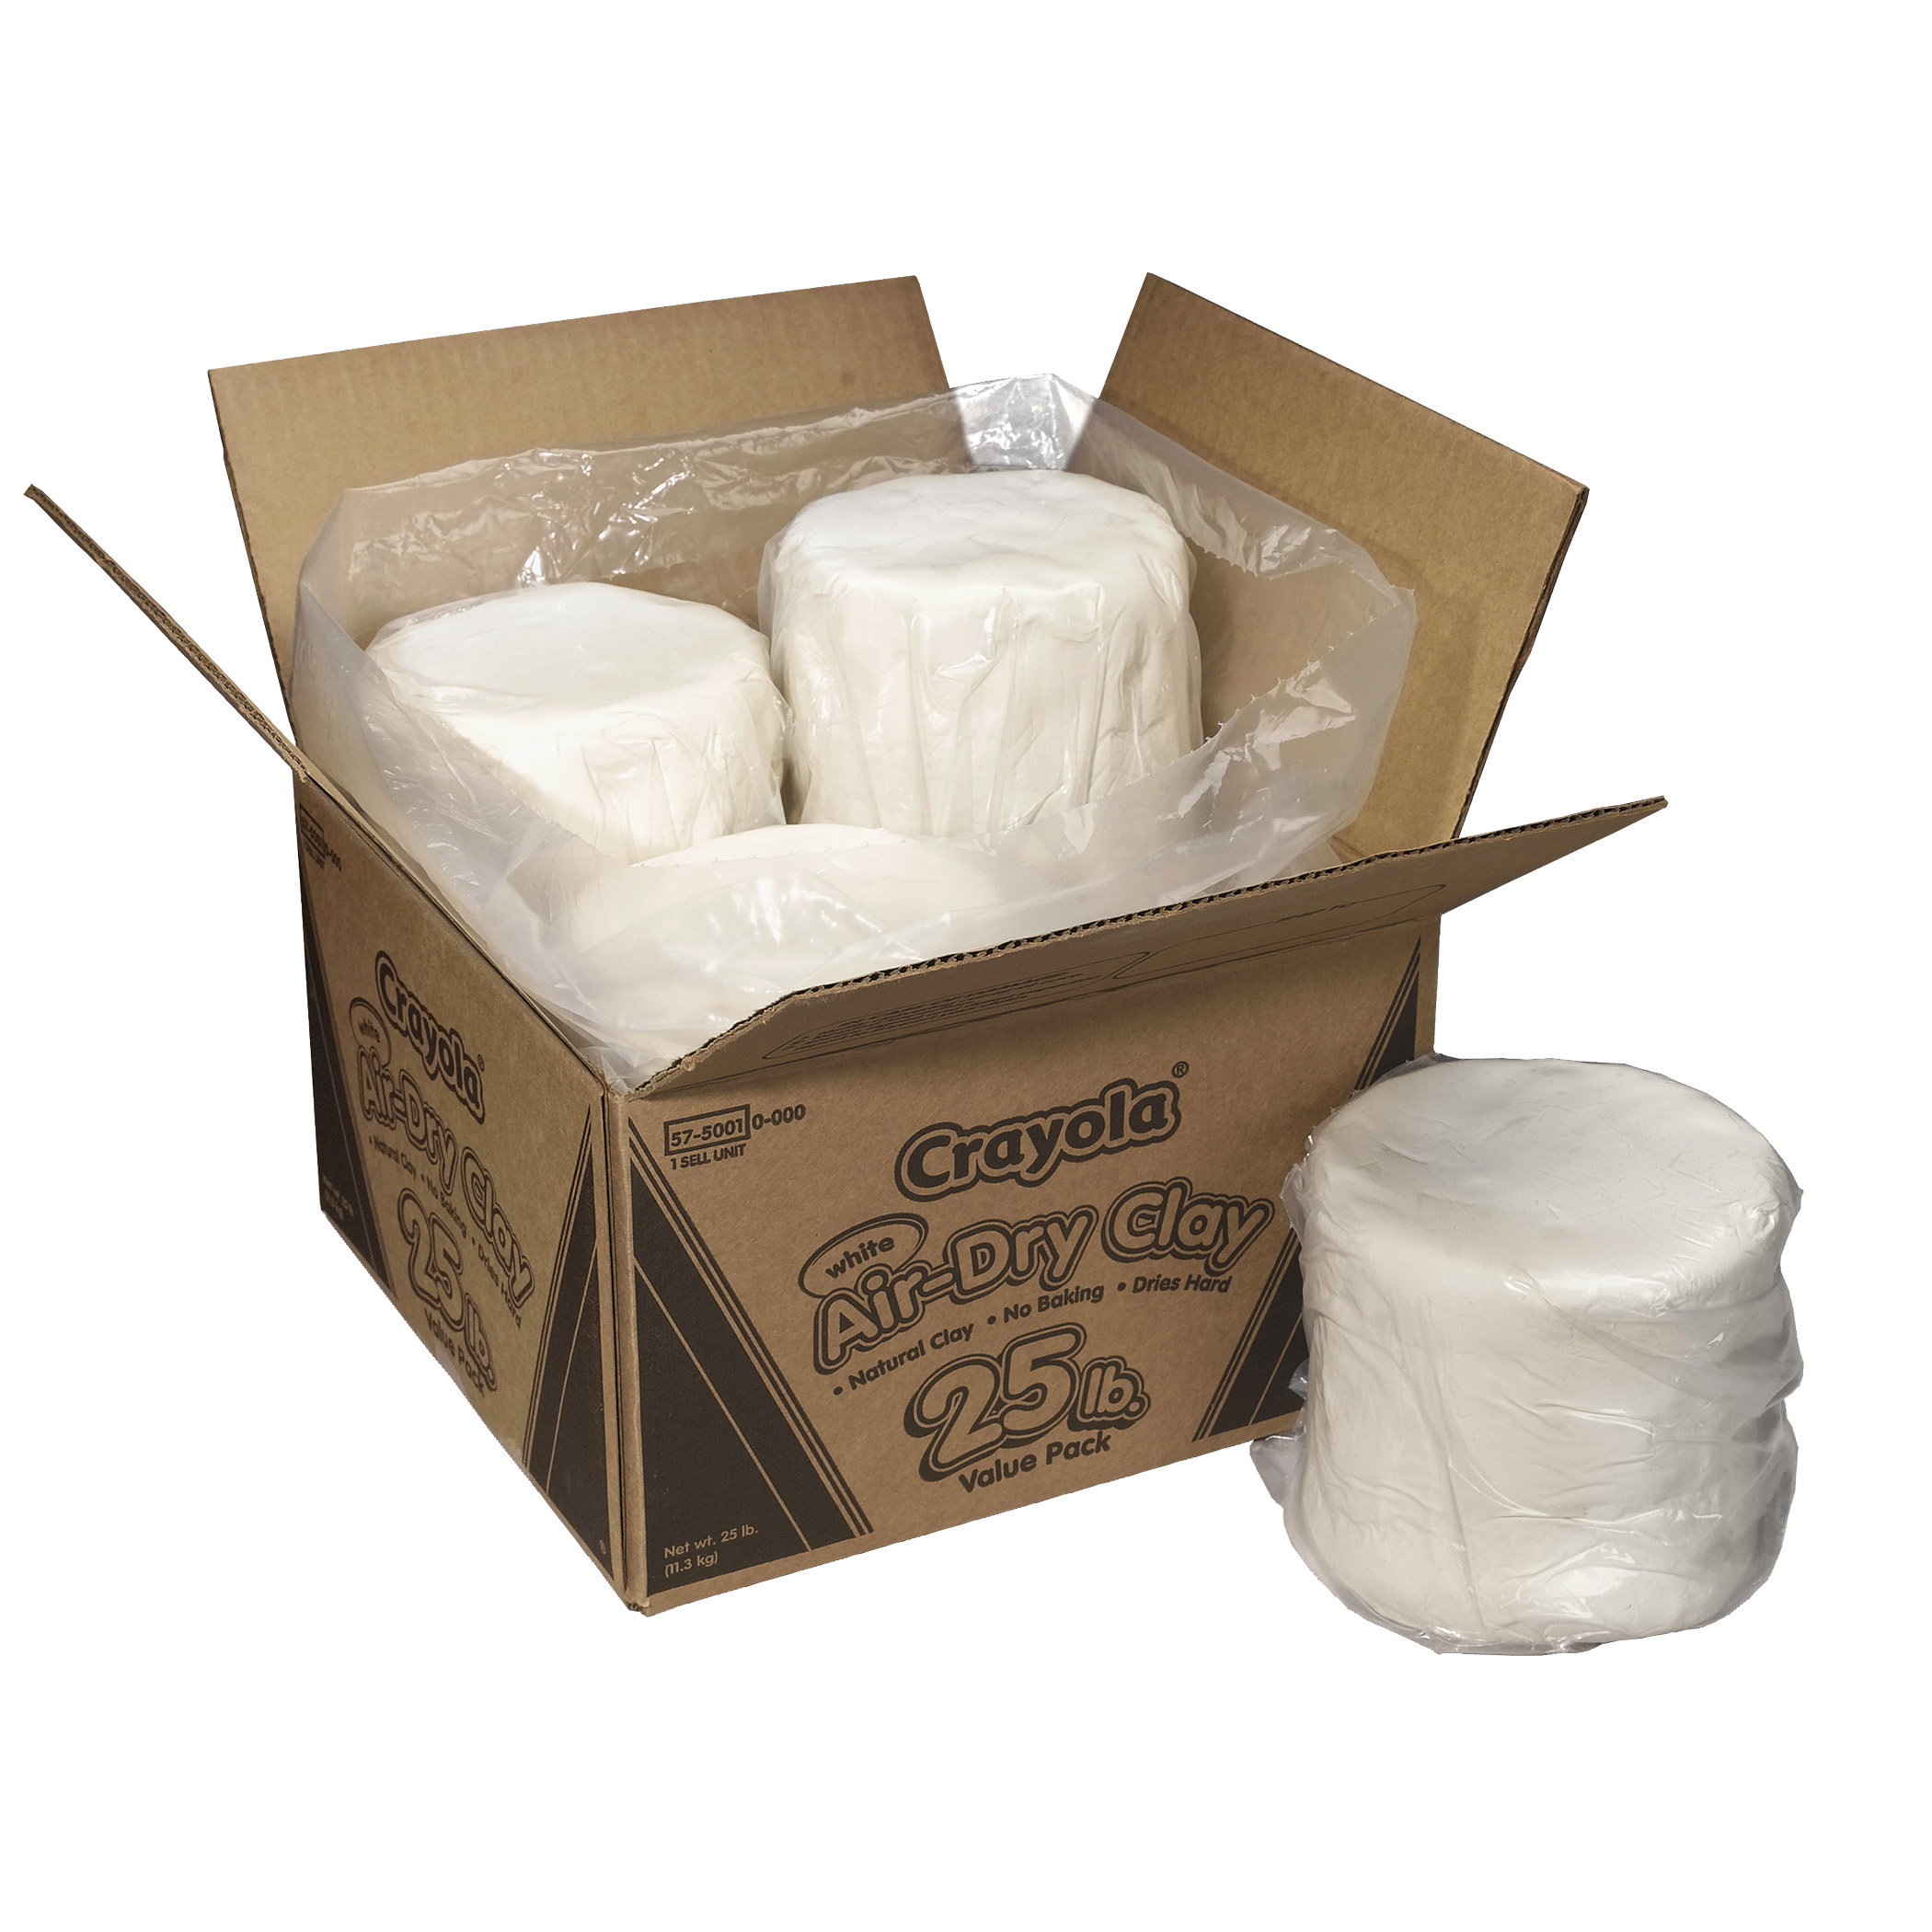 Crayola® Air-Dry Clay, 25 lb. Box, White